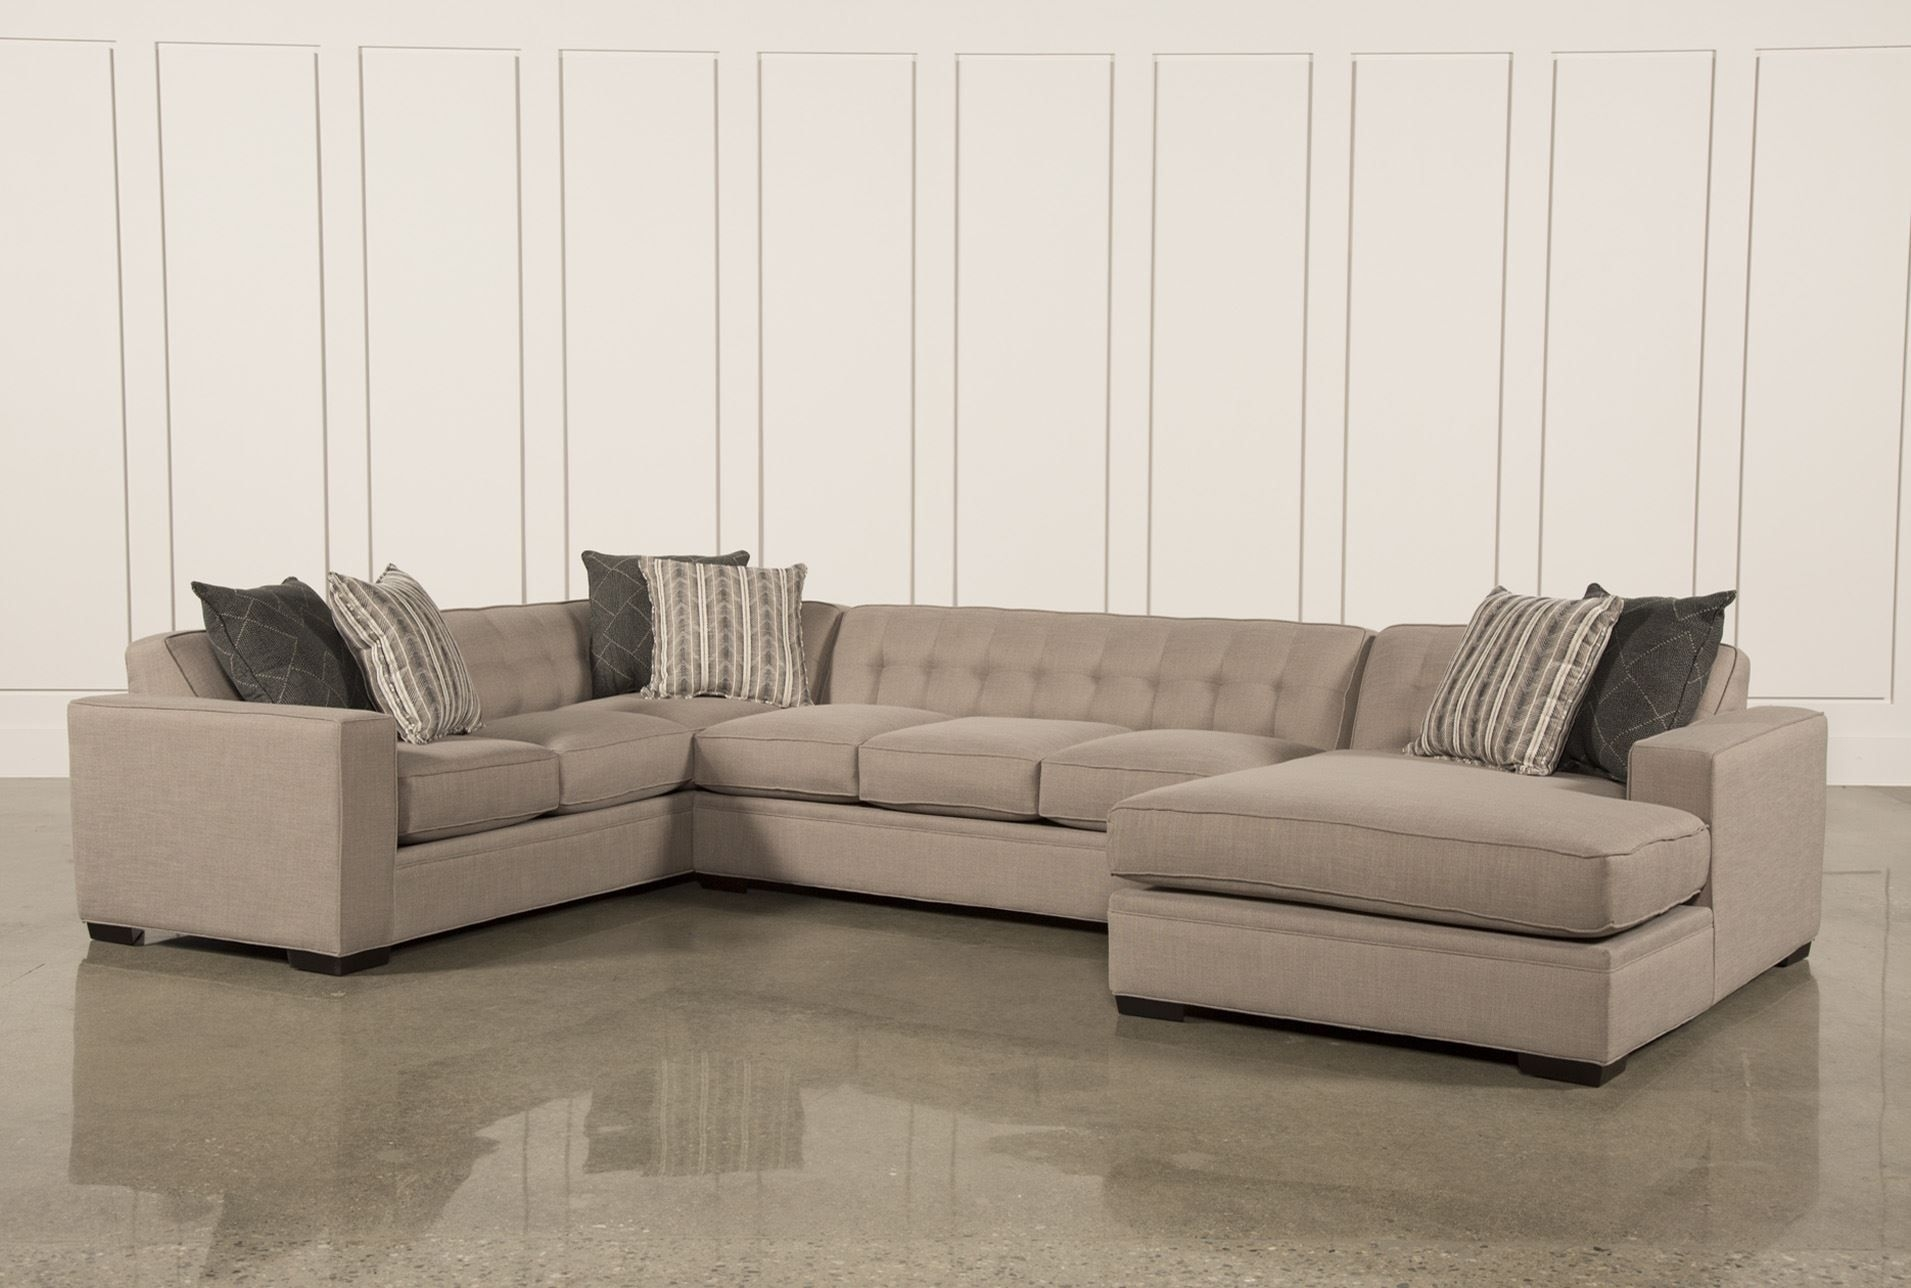 Corbin 3 Piece Sectional W/raf Chaise | New House: Loft | Pinterest Intended For Norfolk Grey 3 Piece Sectionals With Laf Chaise (Image 4 of 25)